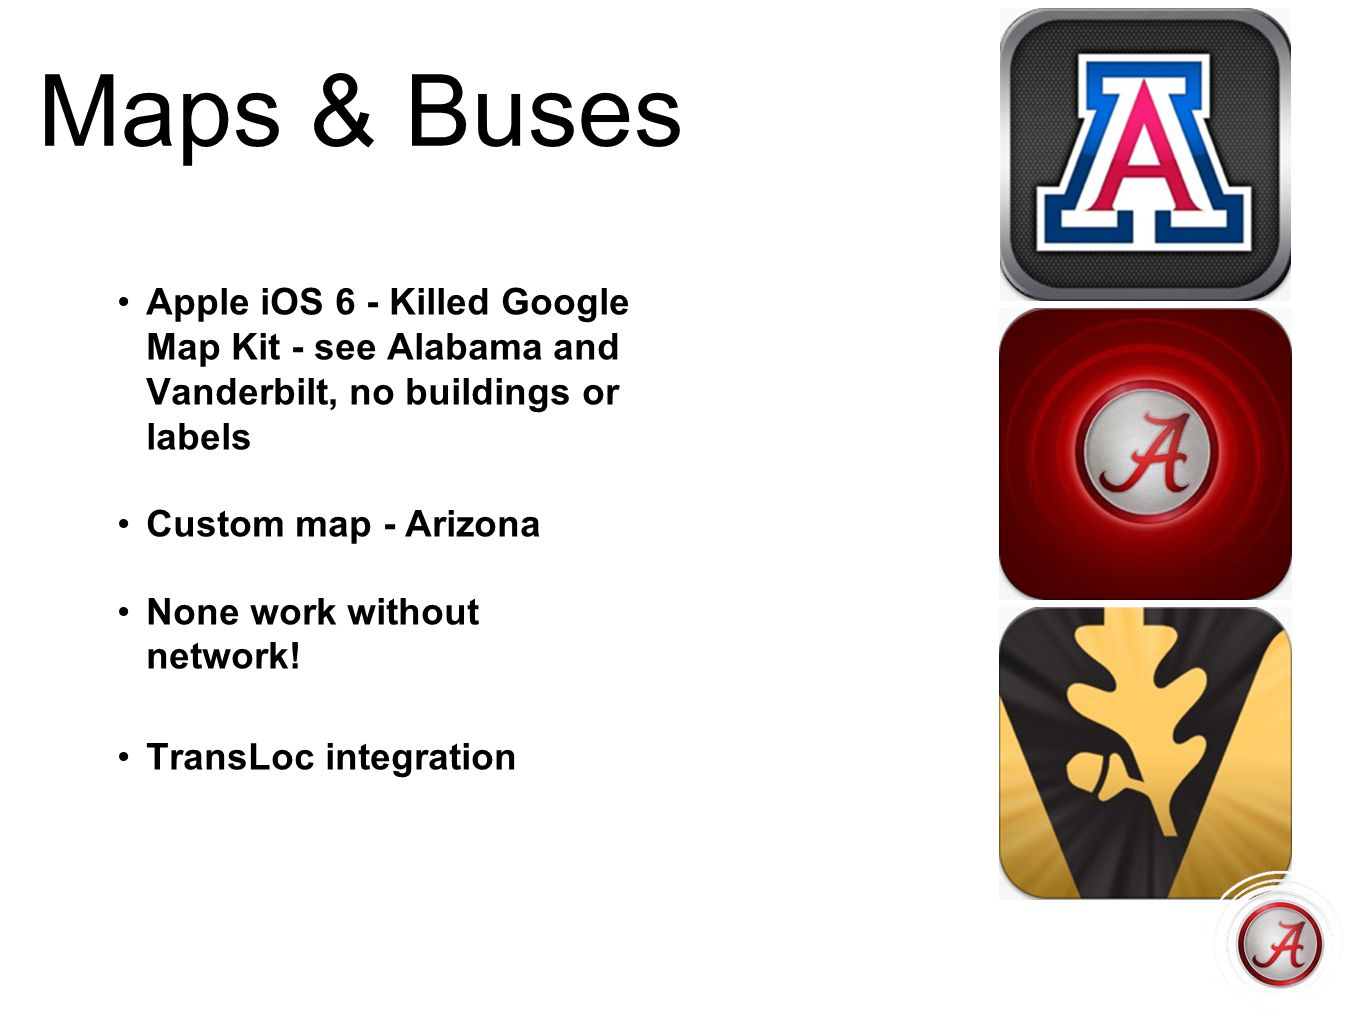 Maps & Buses Apple iOS 6 - Killed Google Map Kit - see Alabama and Vanderbilt, no buildings or labels.